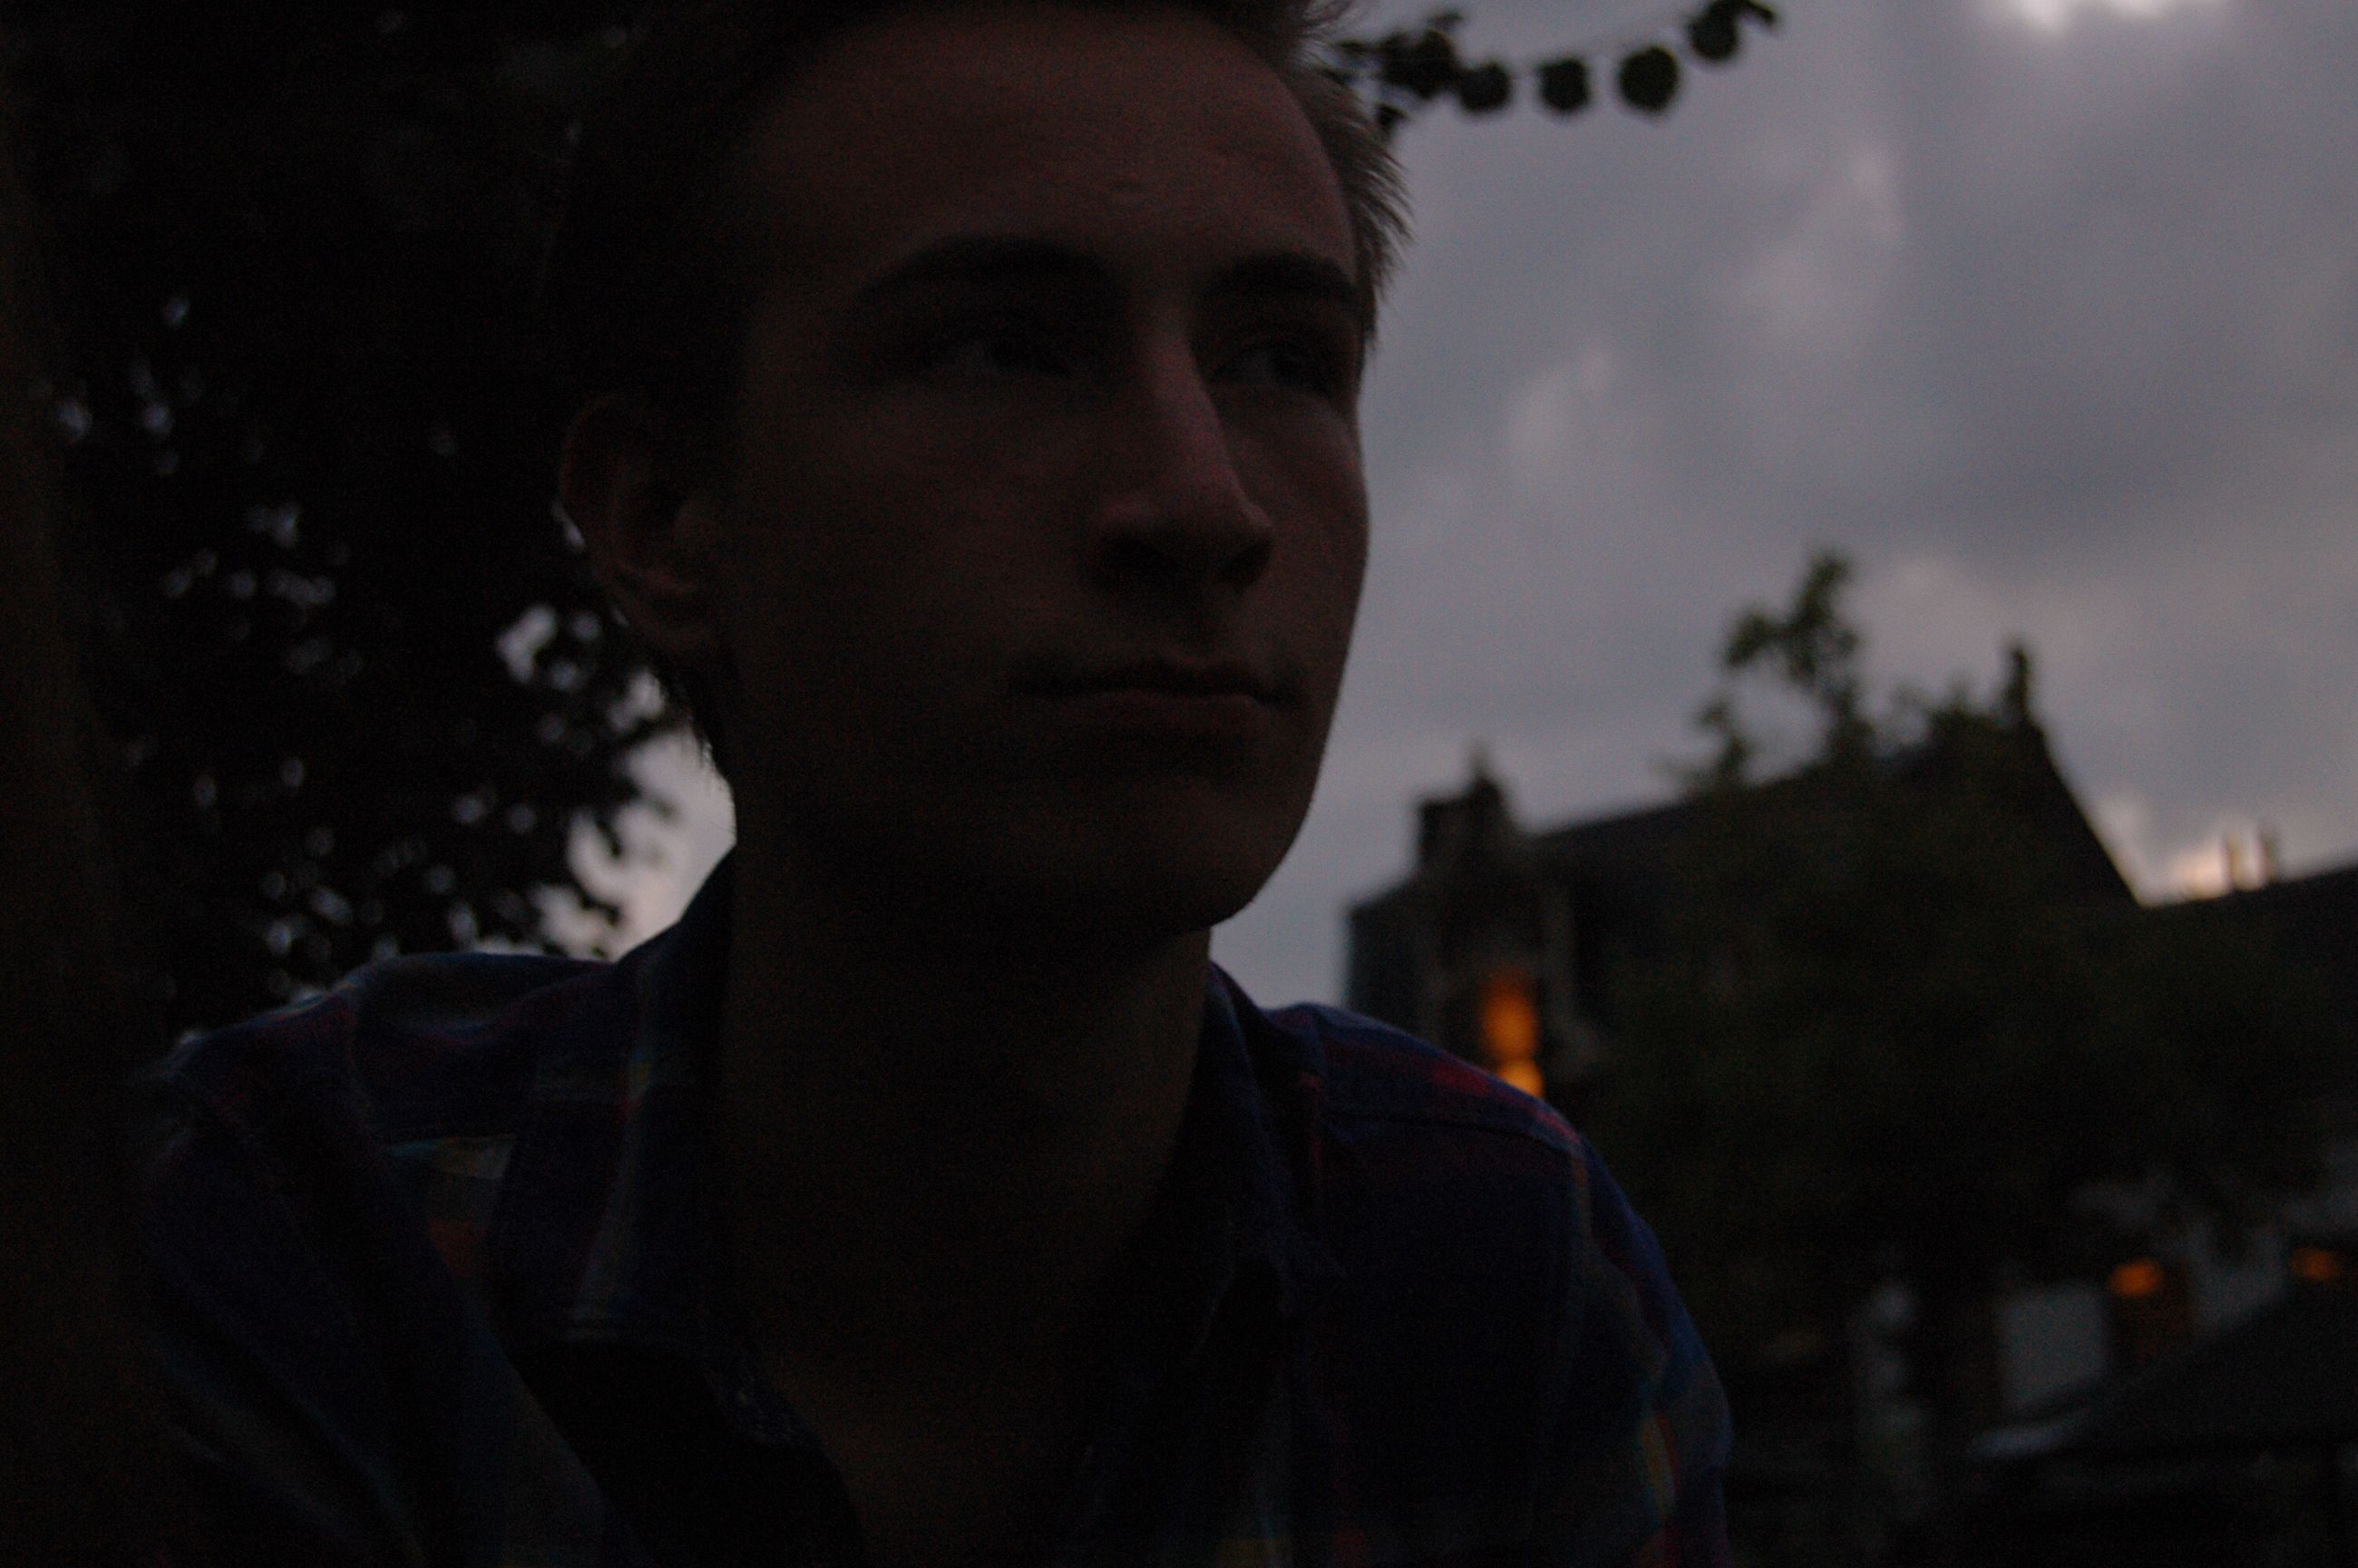 focus on foreground, headshot, cloud, sky, young adult, person, handsome, human face, contemplation, high section